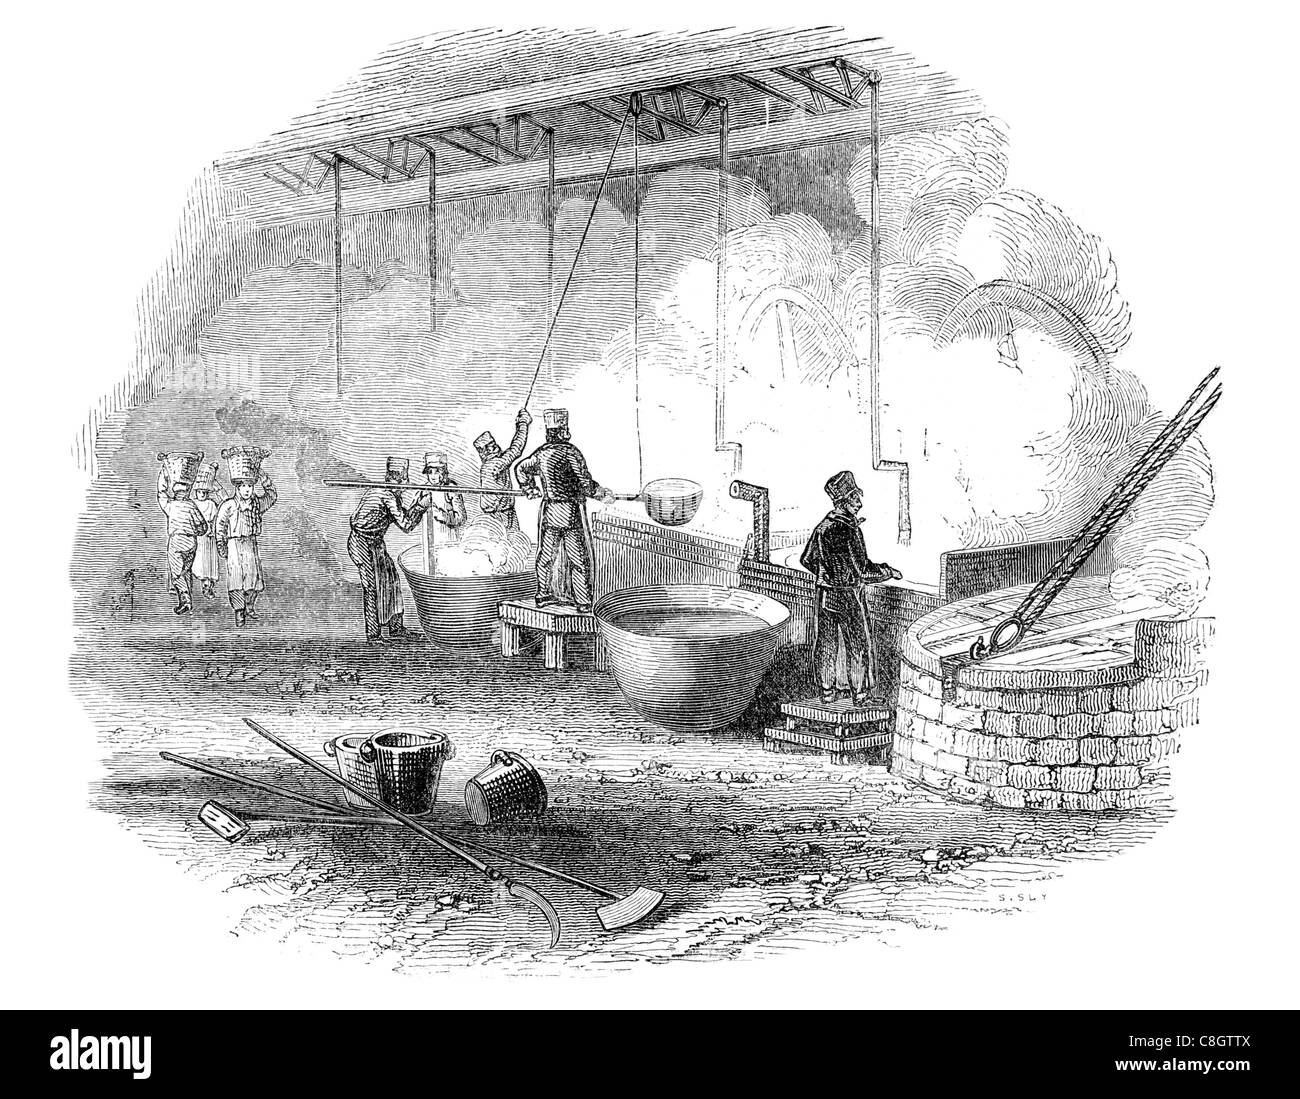 soap boiling coppers copper Industrial Revolution industries industry factory manufacture construction workforce - Stock Image